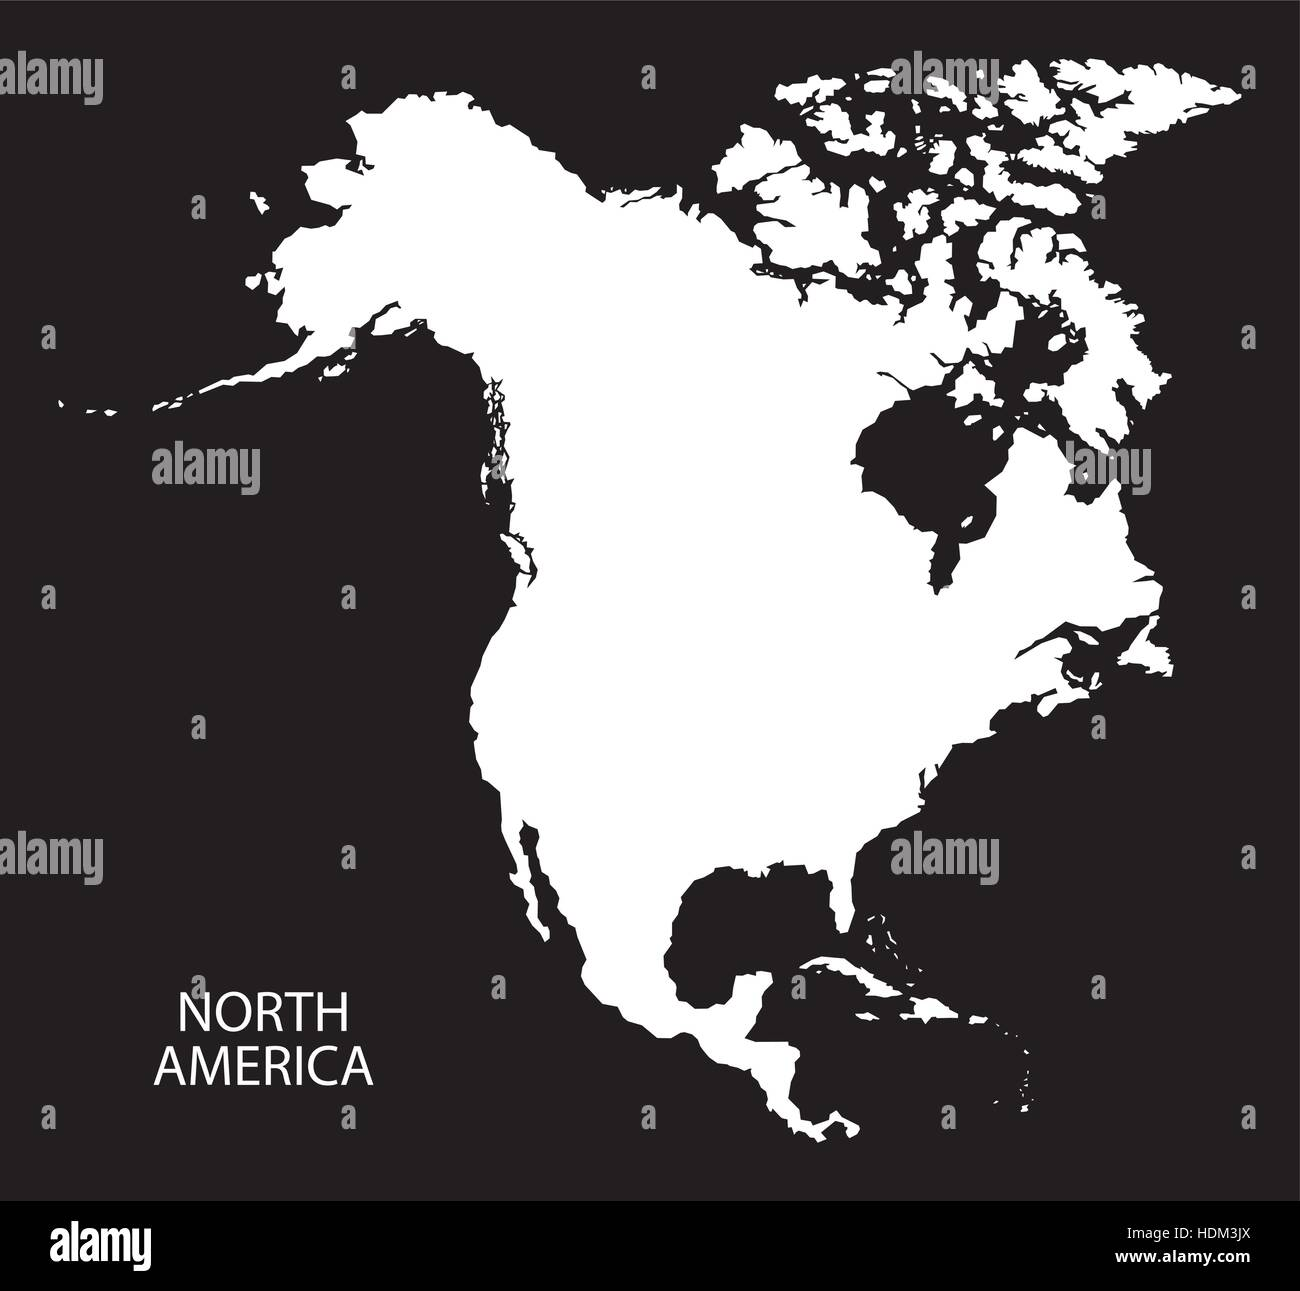 North America Map Black And White Illustration Stock Vector Art - North america map black and white